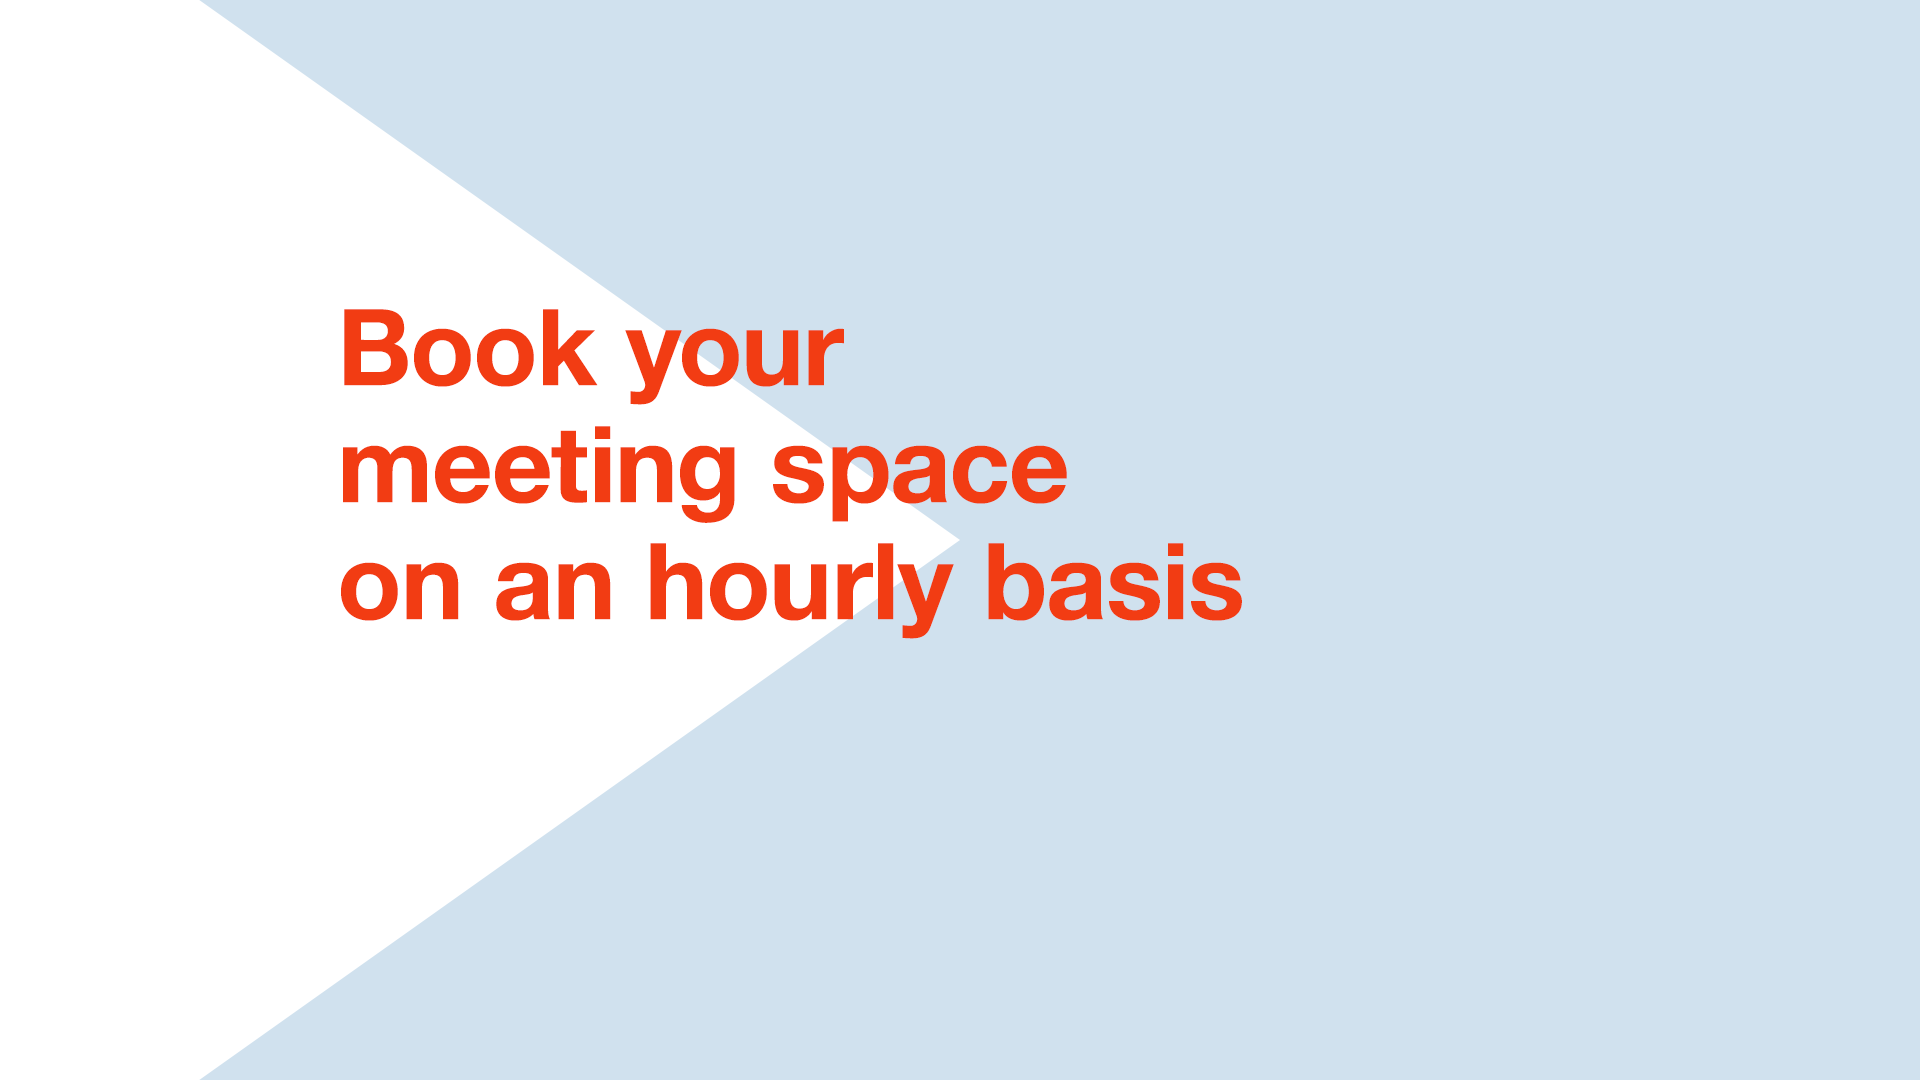 Book your meeting space on an hourly basis - www.designoffices.de/en/online-booking